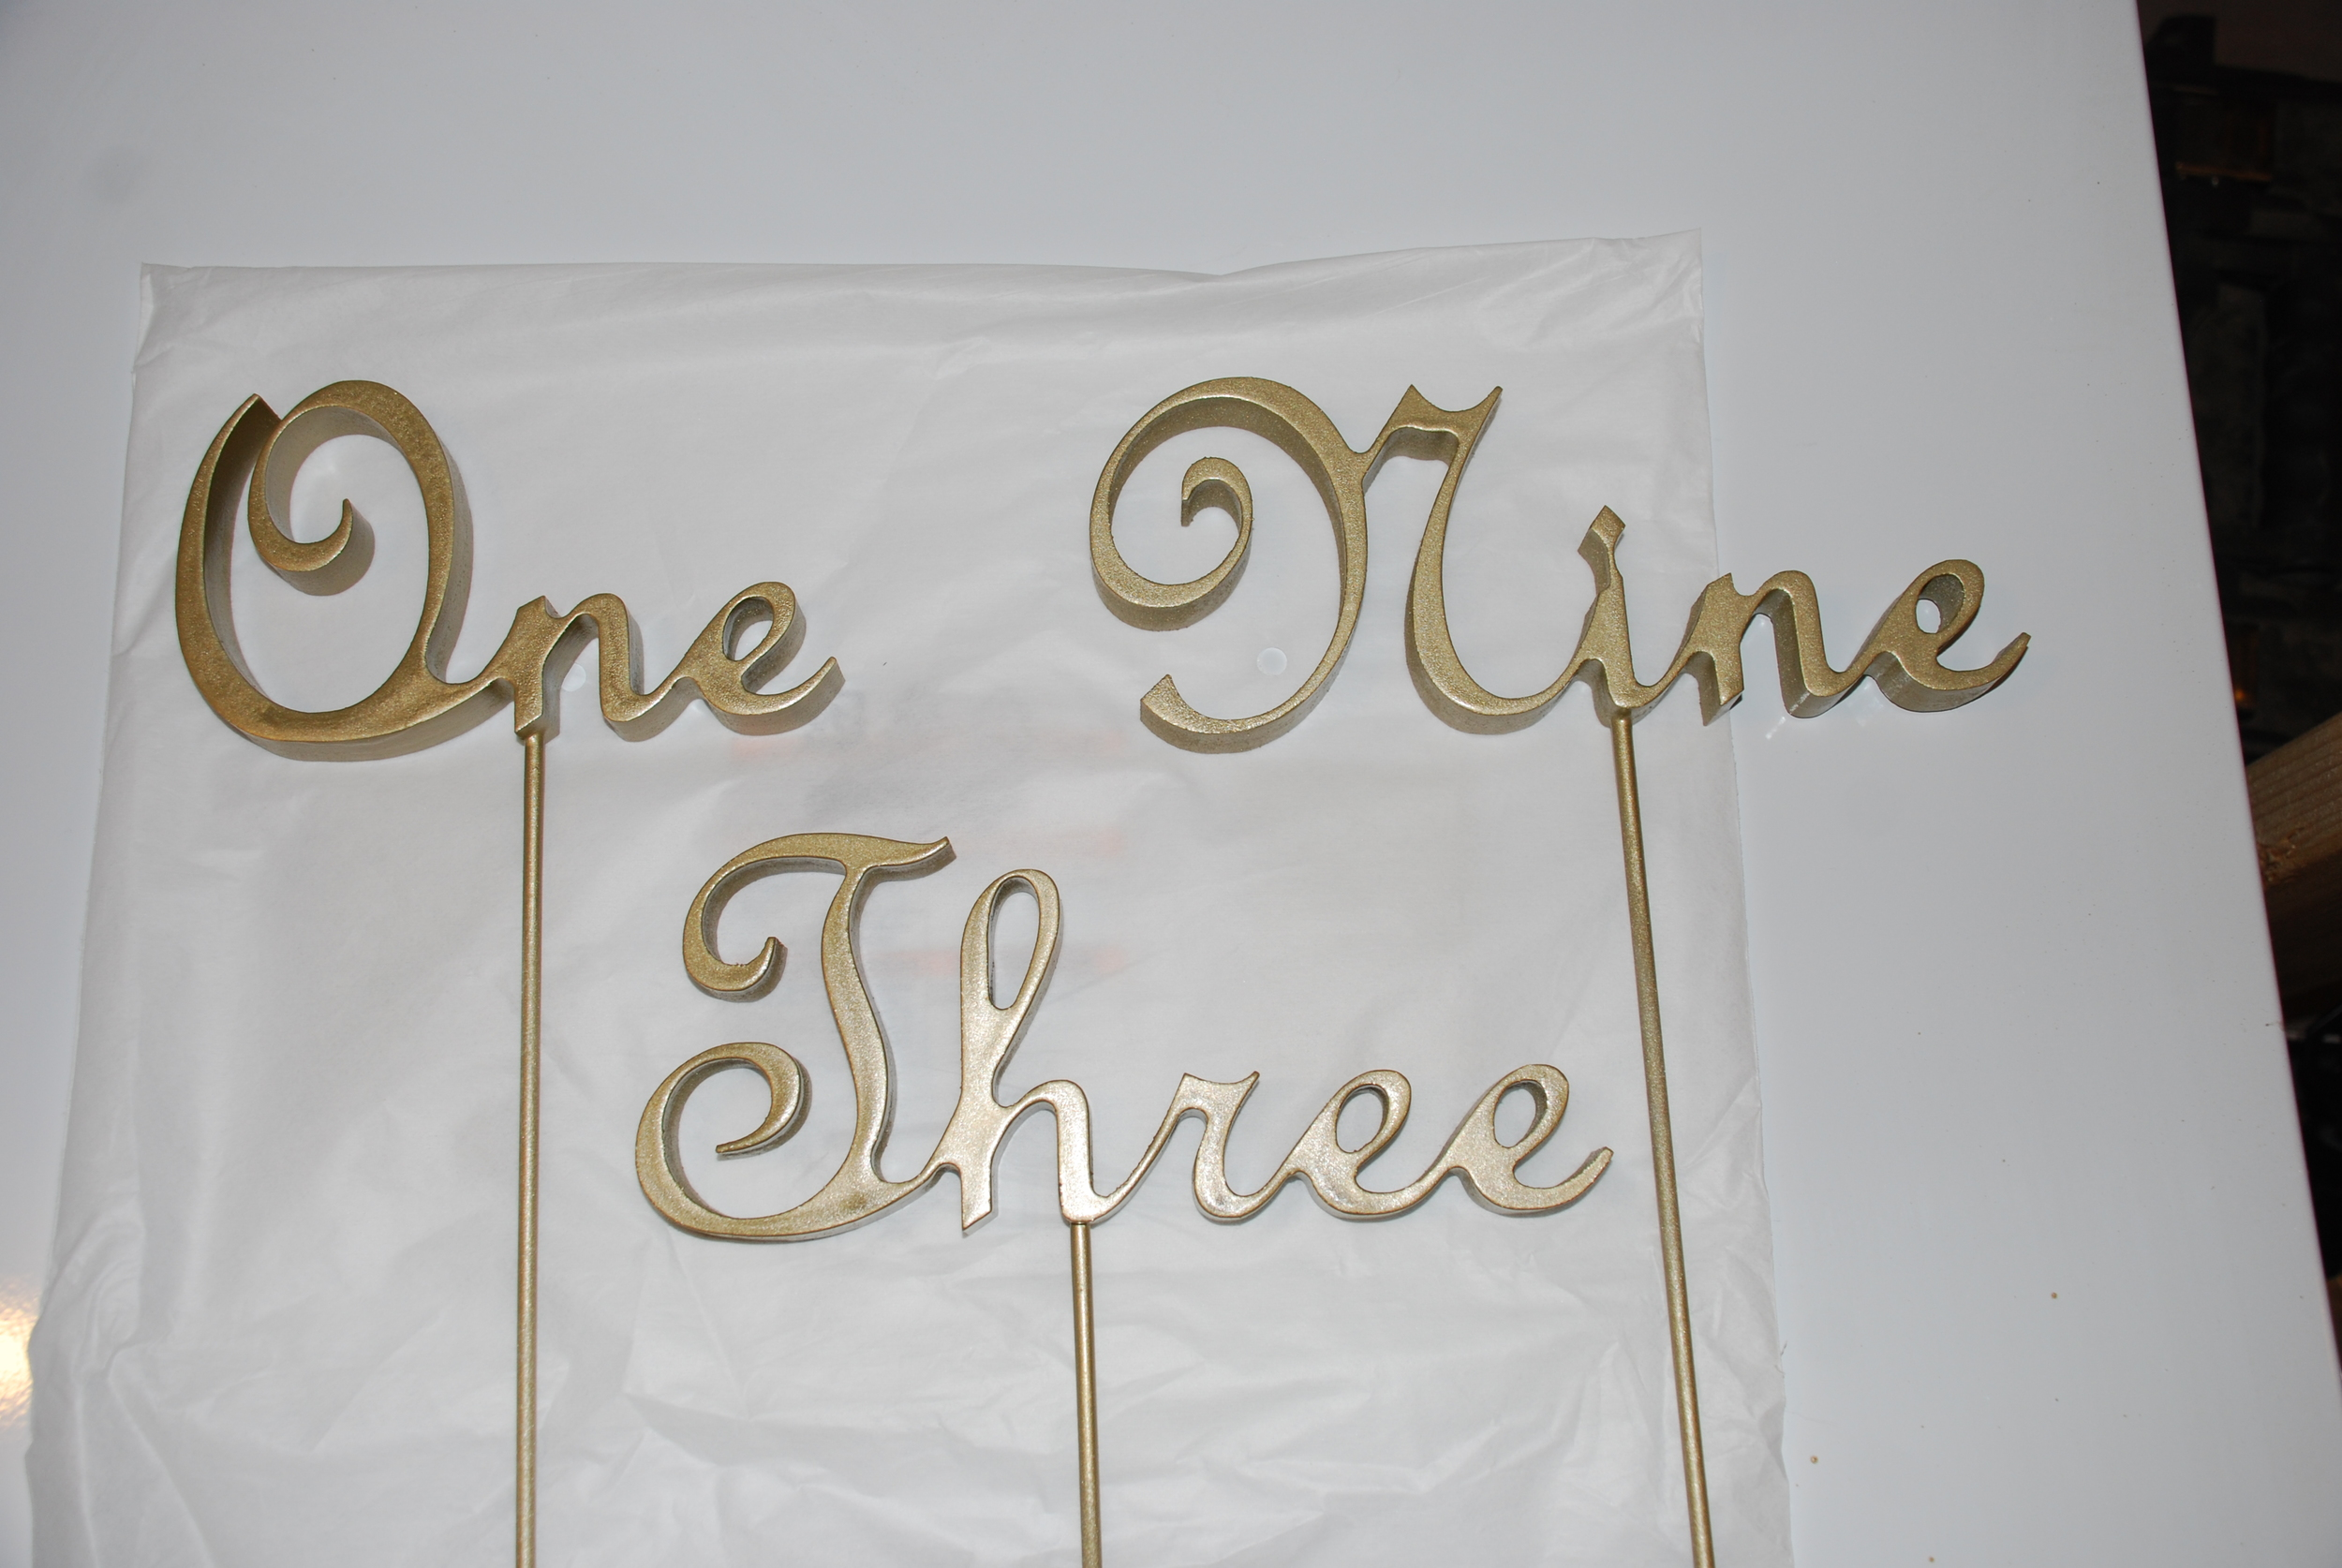 These are destined to be table numbers for a wedding. They were cut from MDF and finished with gold paint.